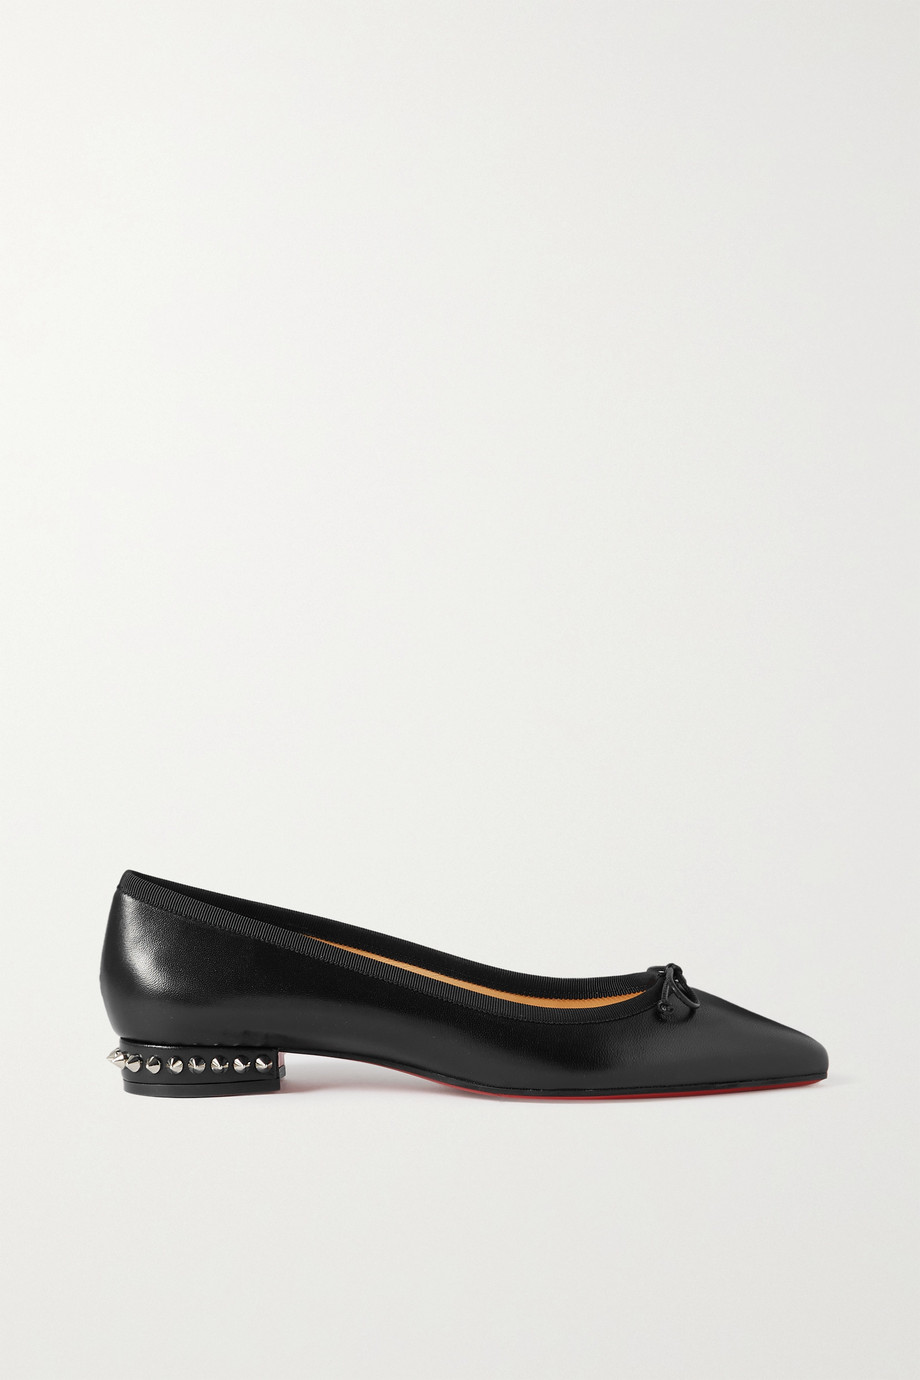 CHRISTIAN LOUBOUTIN Hall spiked glossed lizard-effect leather point-toe flats